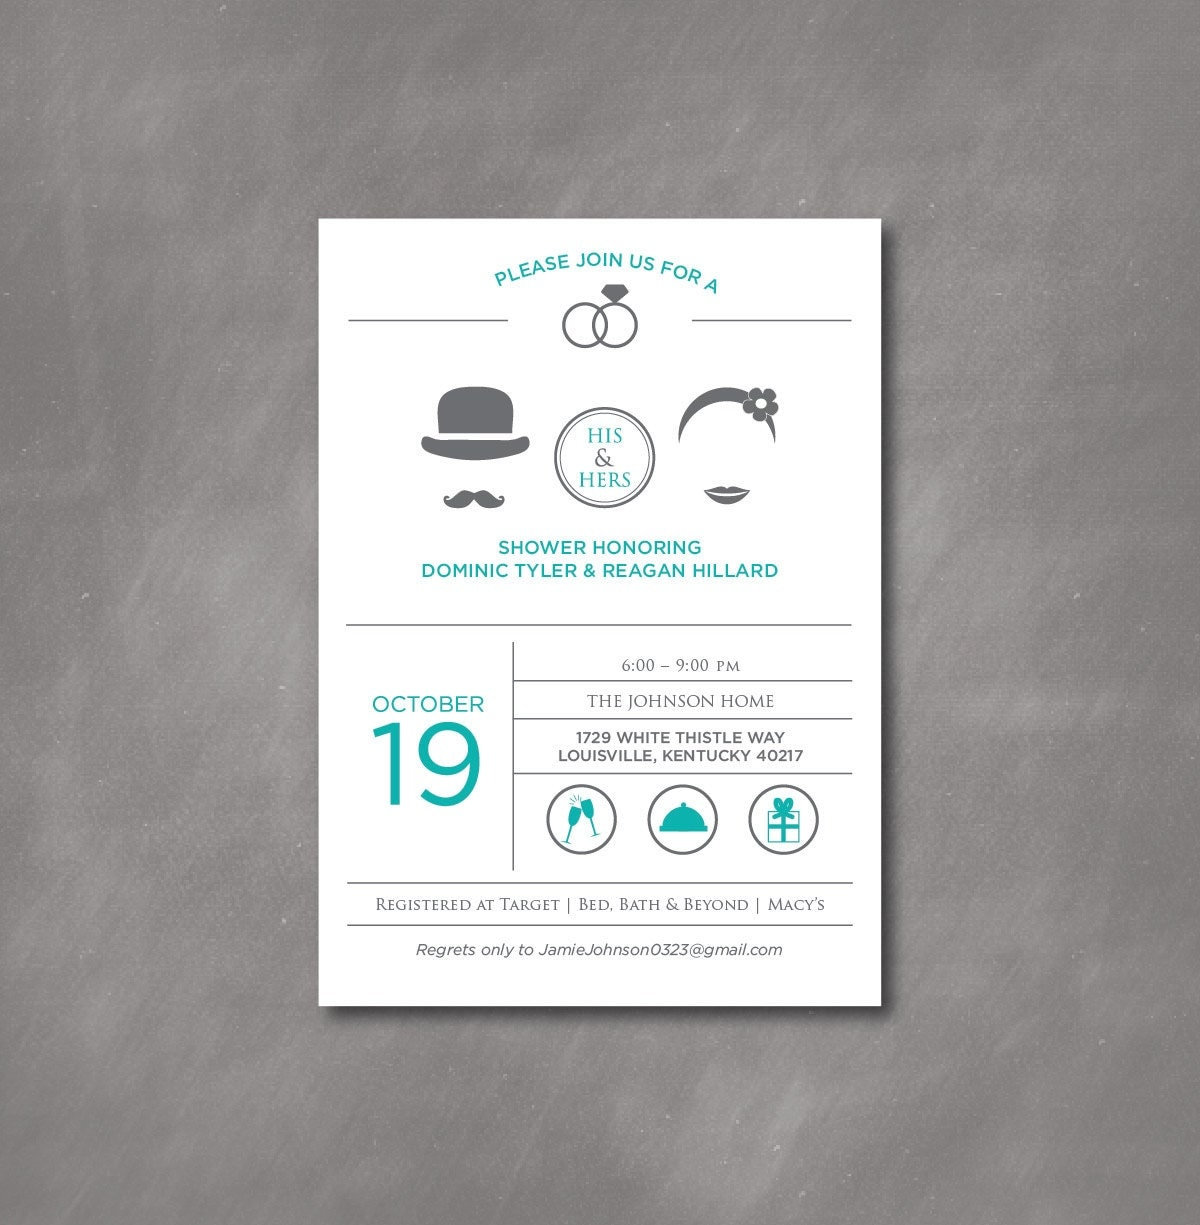 ... / His & Hers / Joint / Bridal / Couple's / Icon Shower Invitation